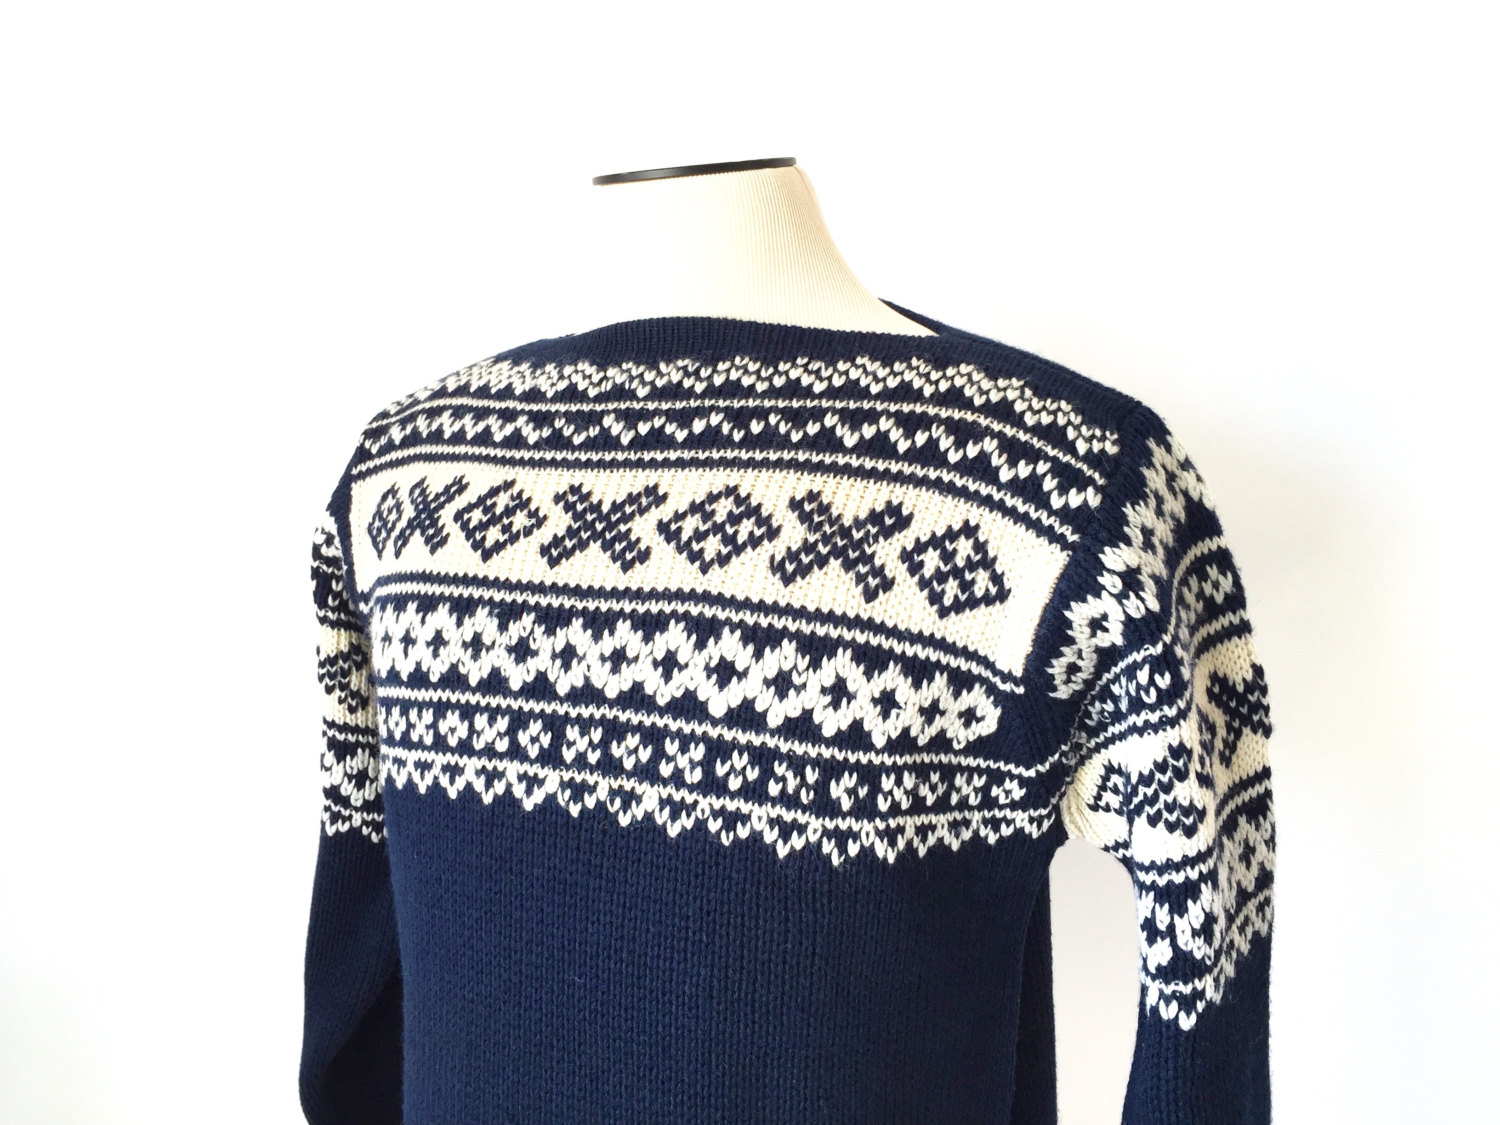 1960's Nordic style sweater by White Stag